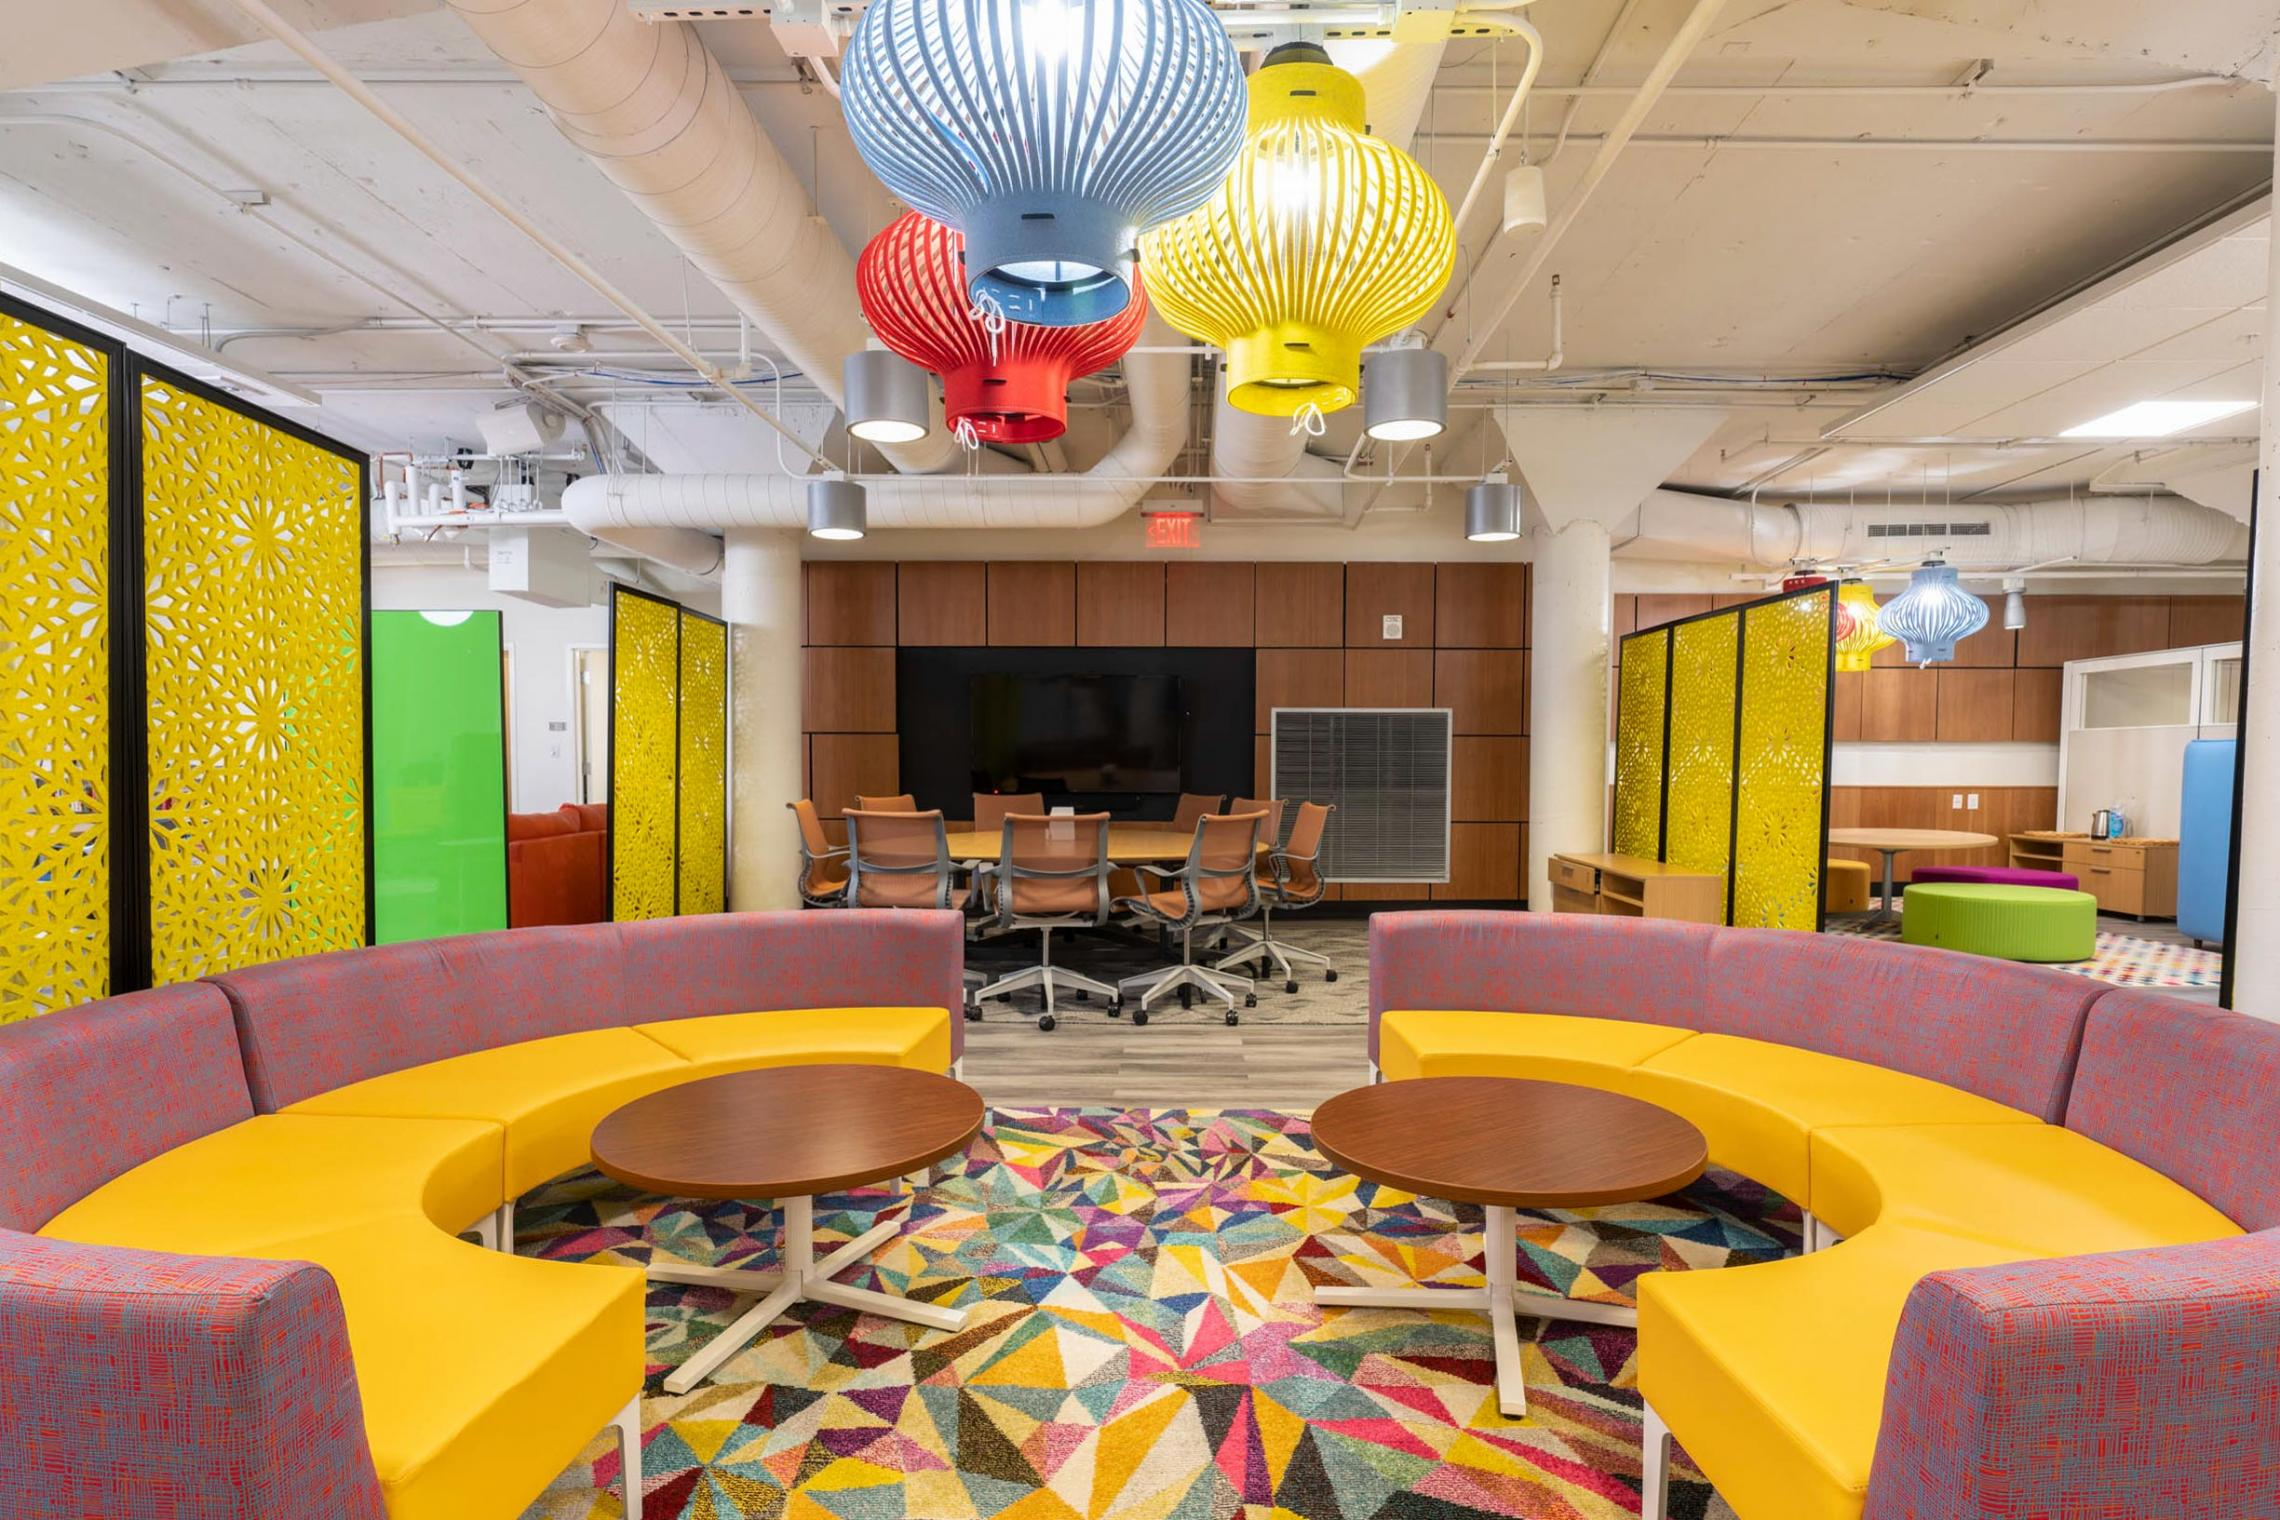 Colorful, comfortable furnishings welcome students to the new Multicultural Student Center.